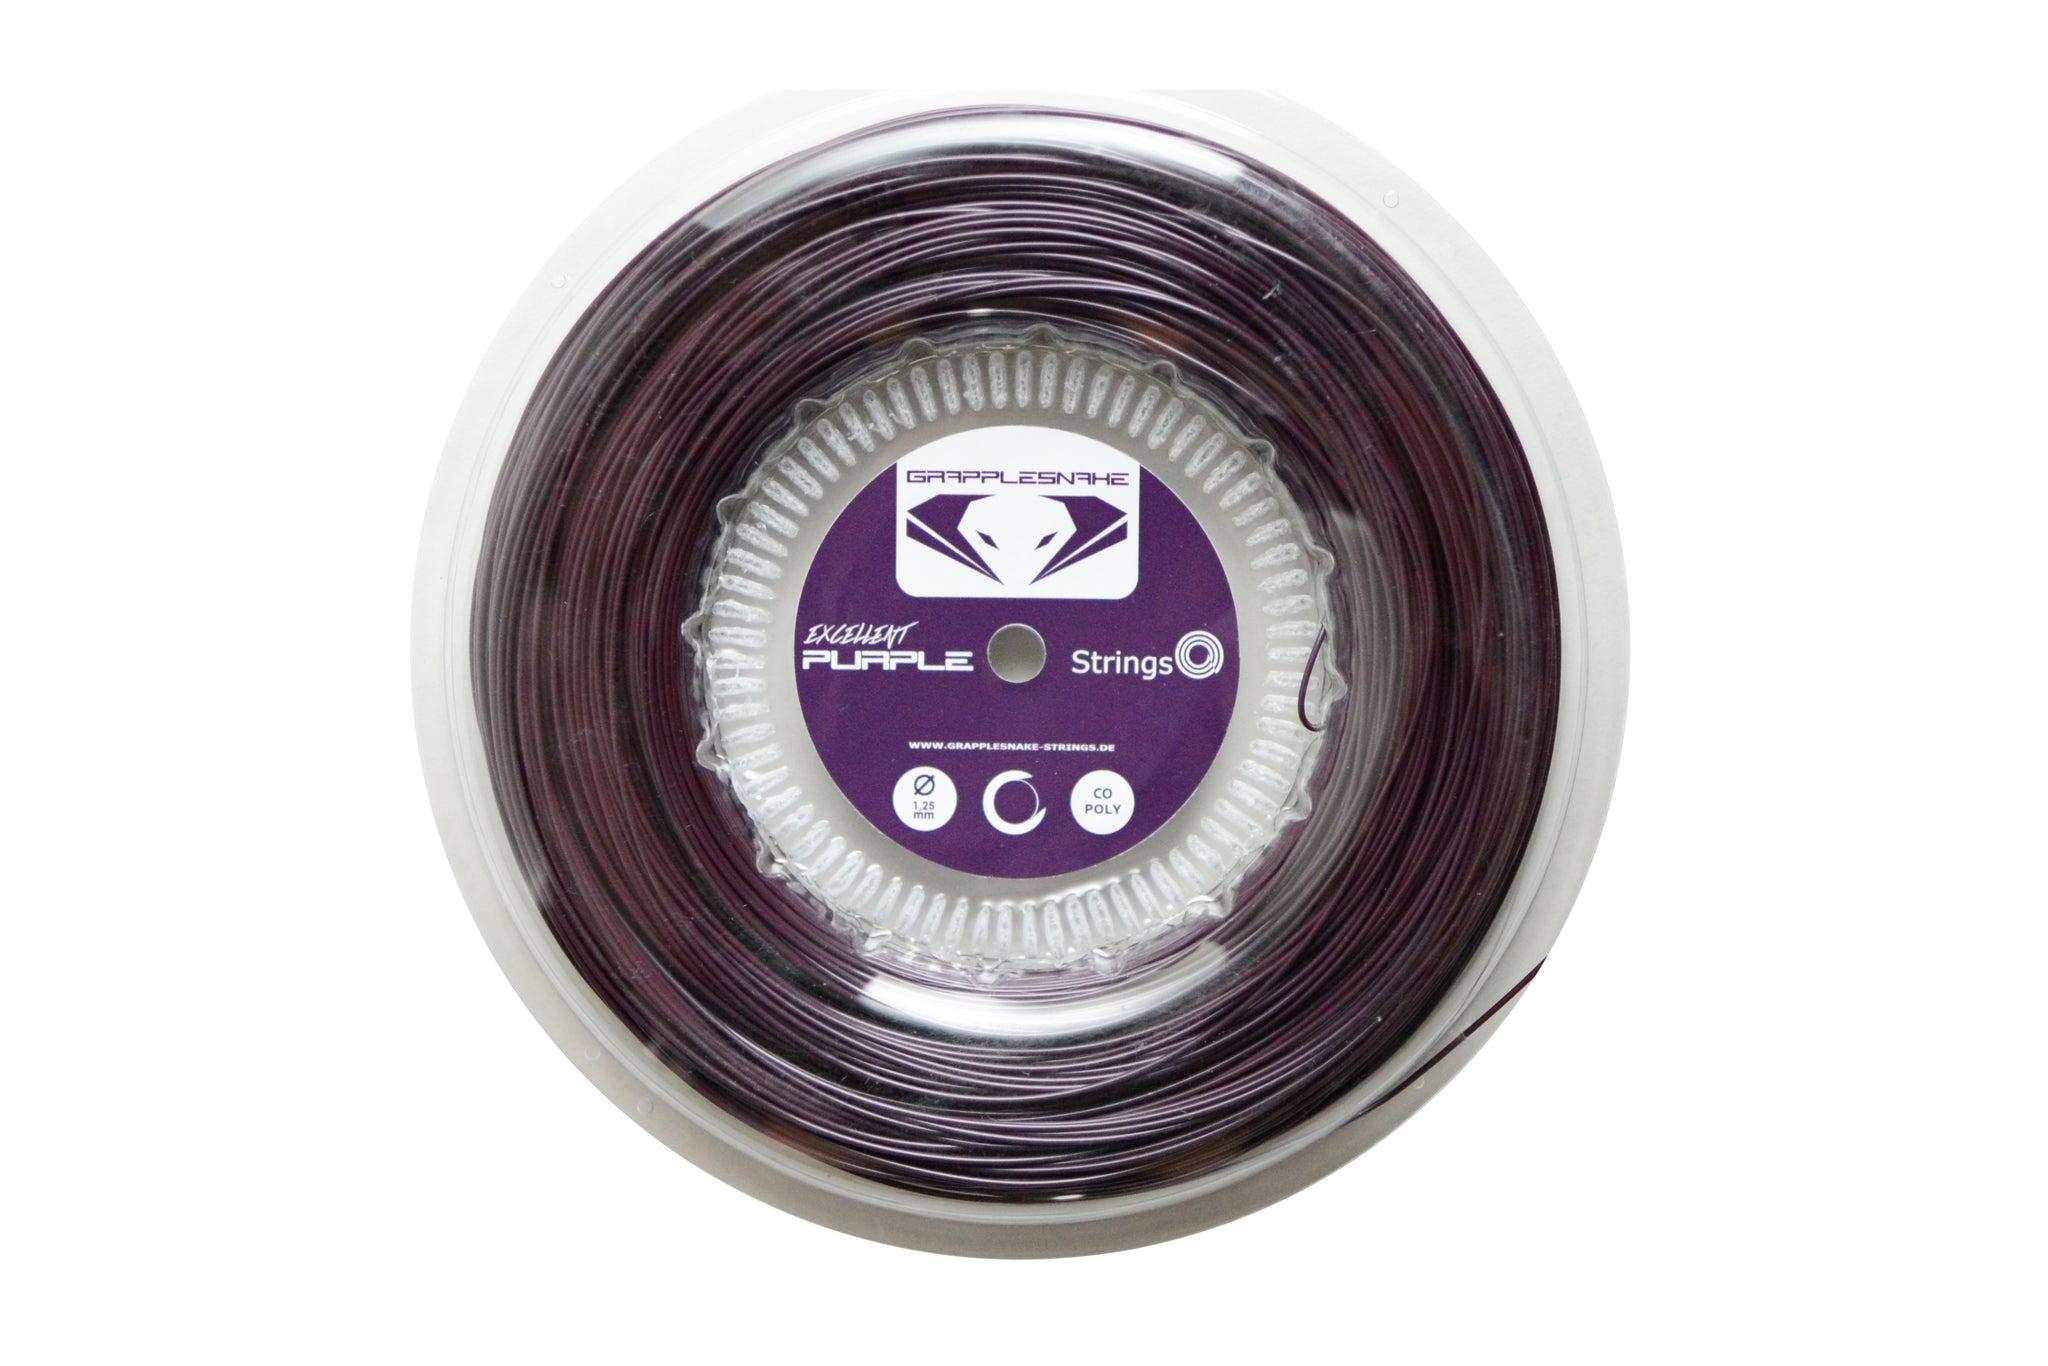 Excellent Purple - Reel